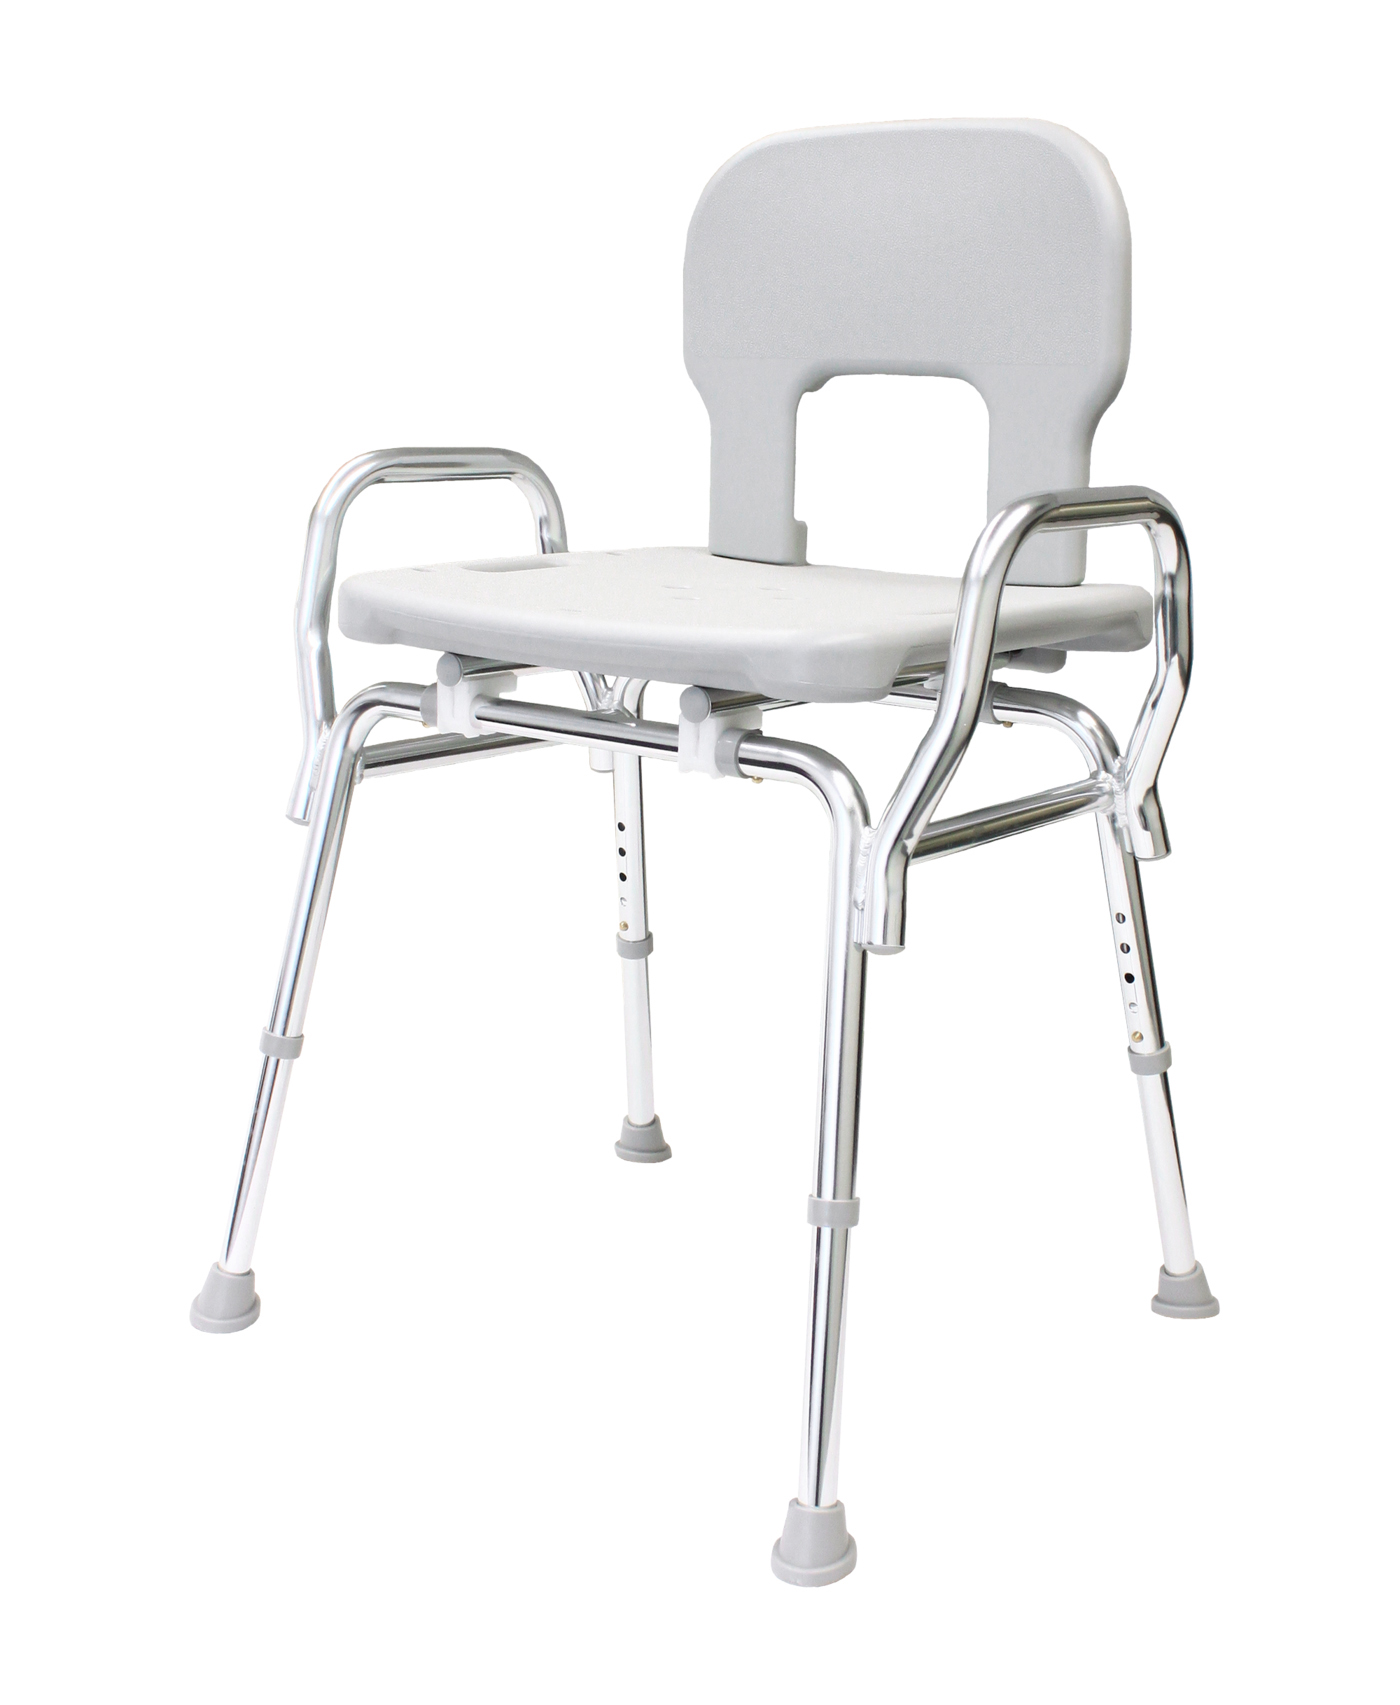 Bariatric Shower Chair - 72621